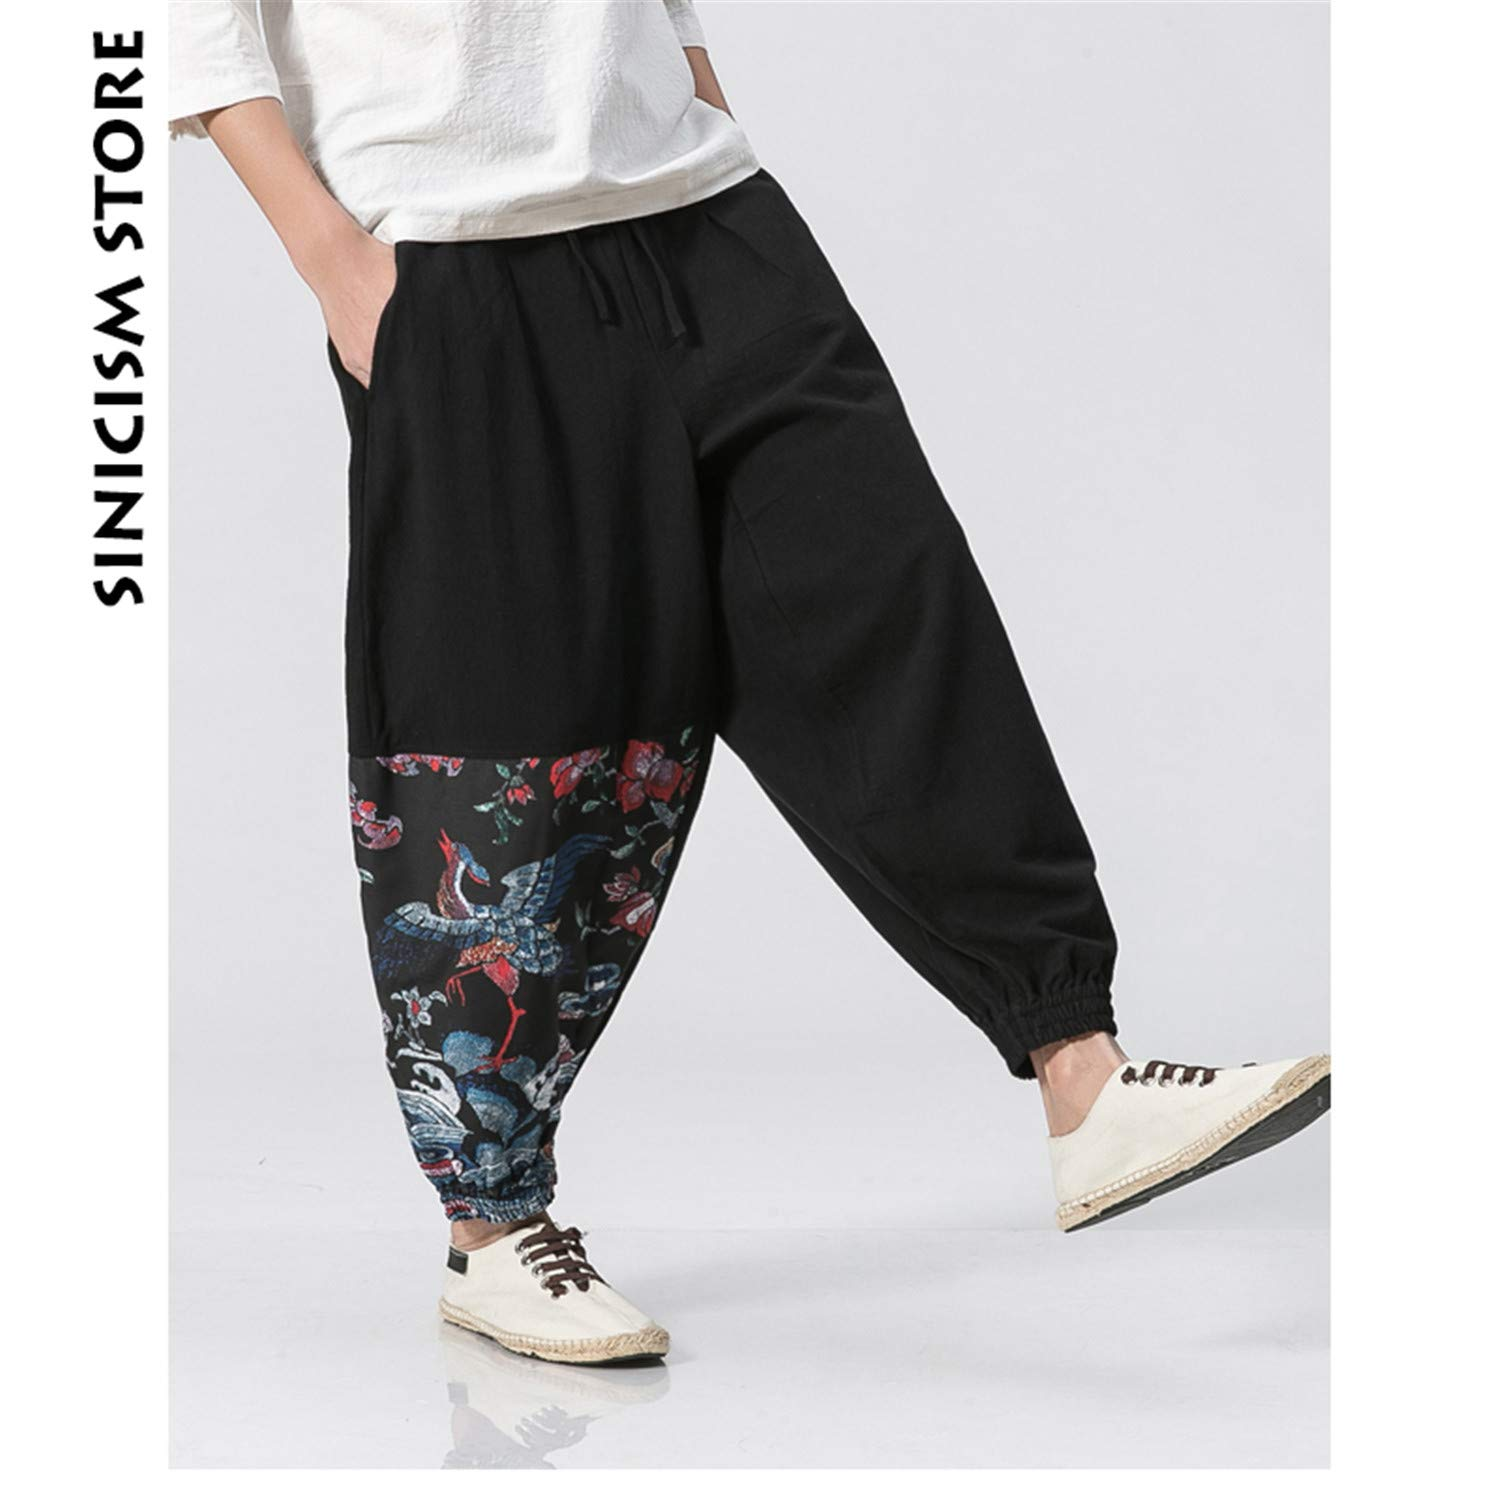 MASCHERANO Linen Harem Pants Mens Summer Jogger Pants New Pattern Print Baggy Loose Pants